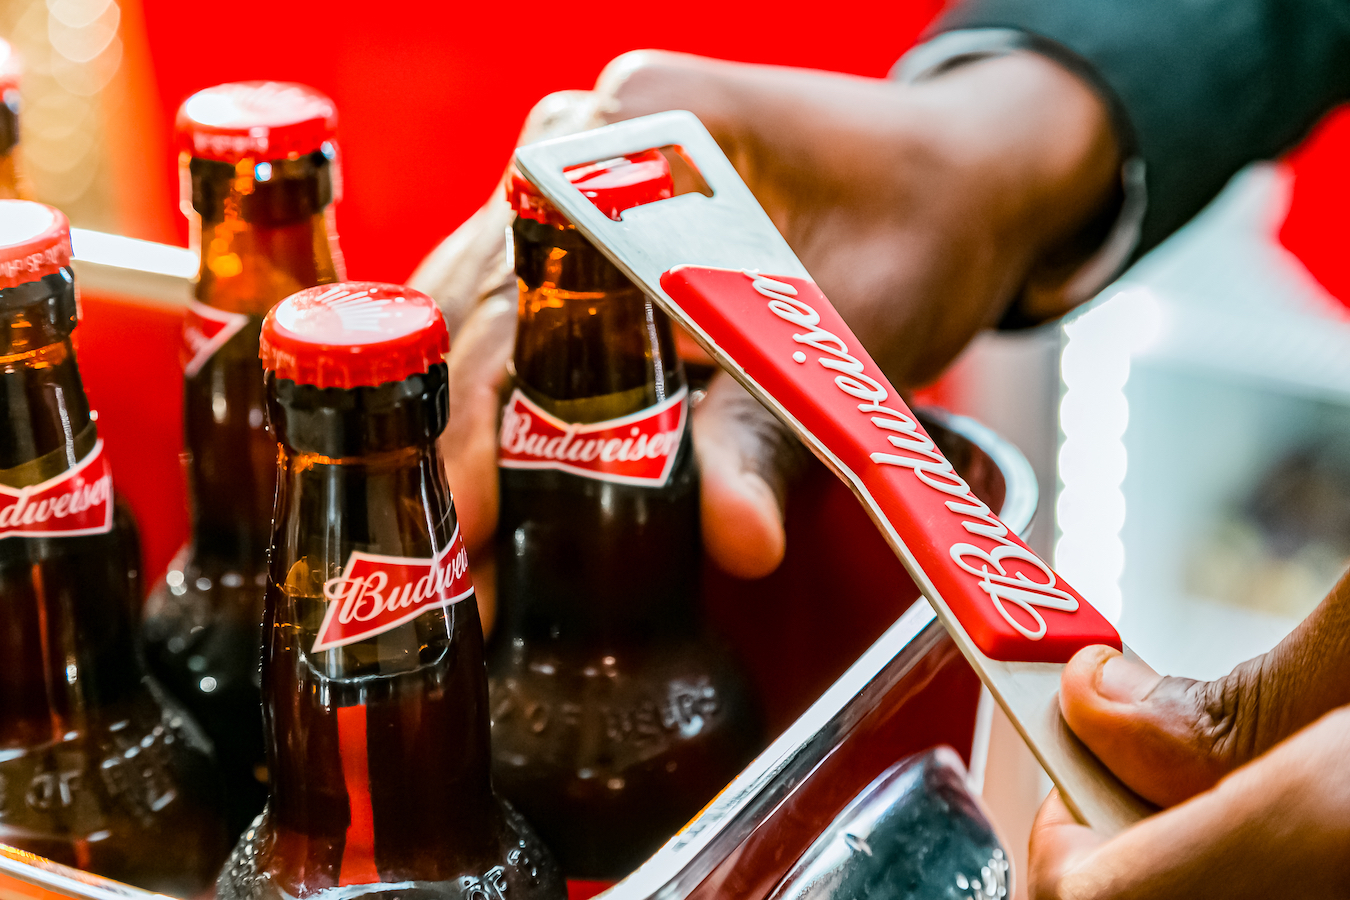 Budweiser is giving out free beer to those who have been vaccinated